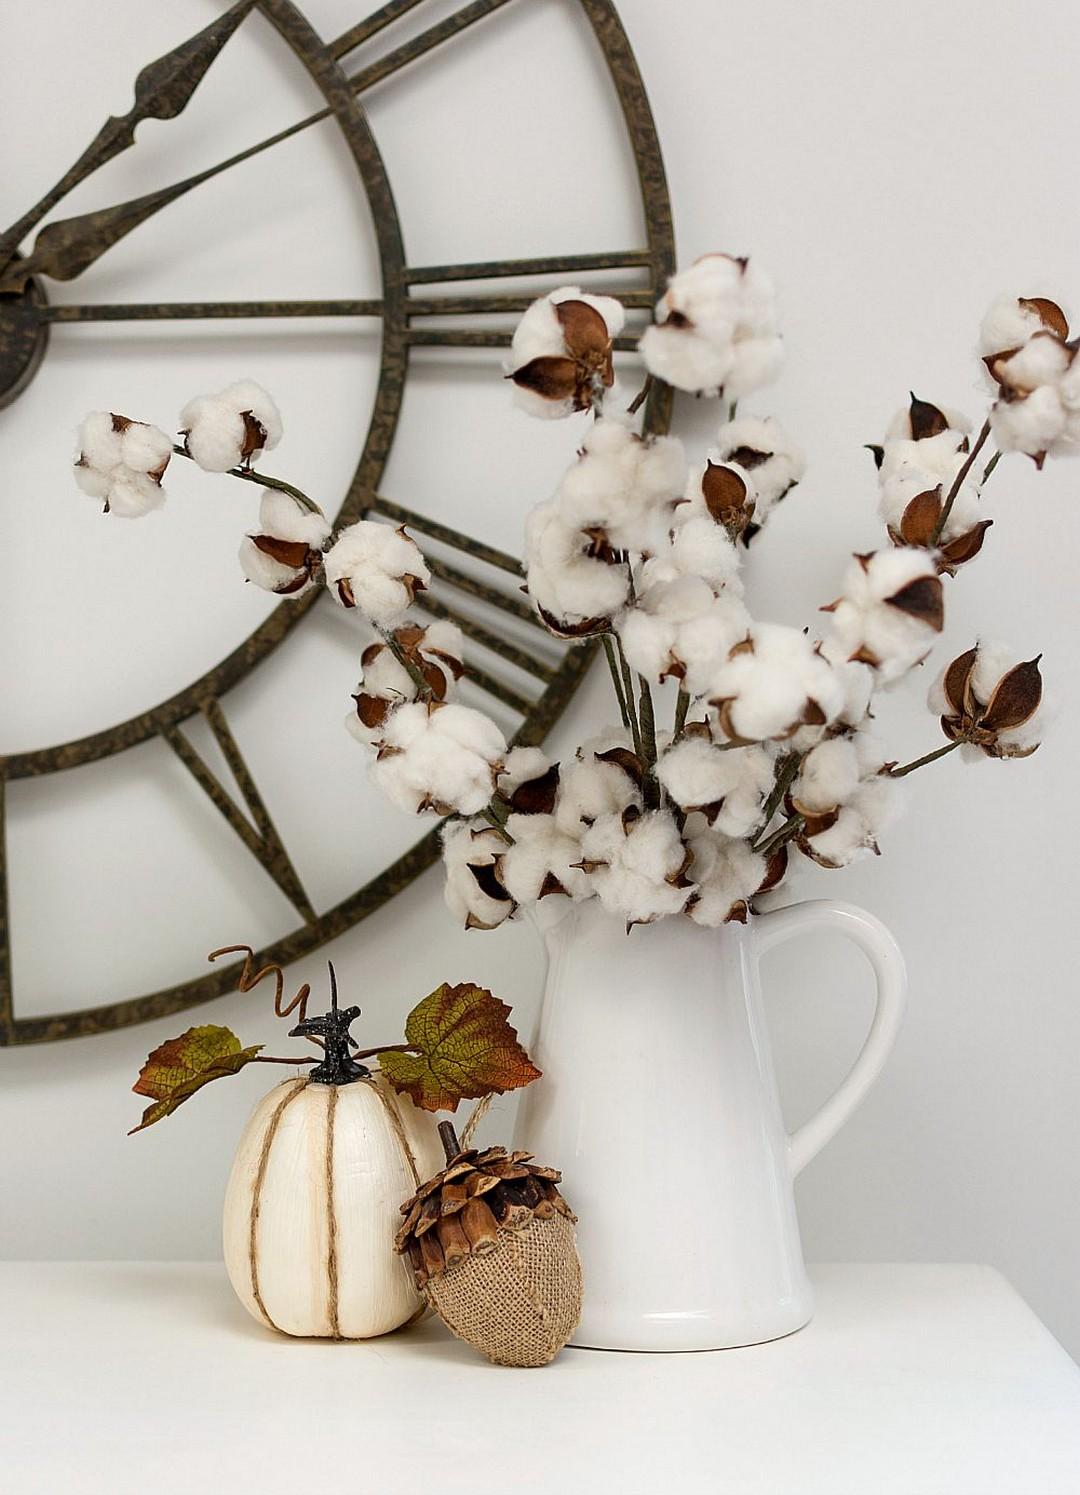 white countertop with pumpkin decor and white vase holding cotton flowers